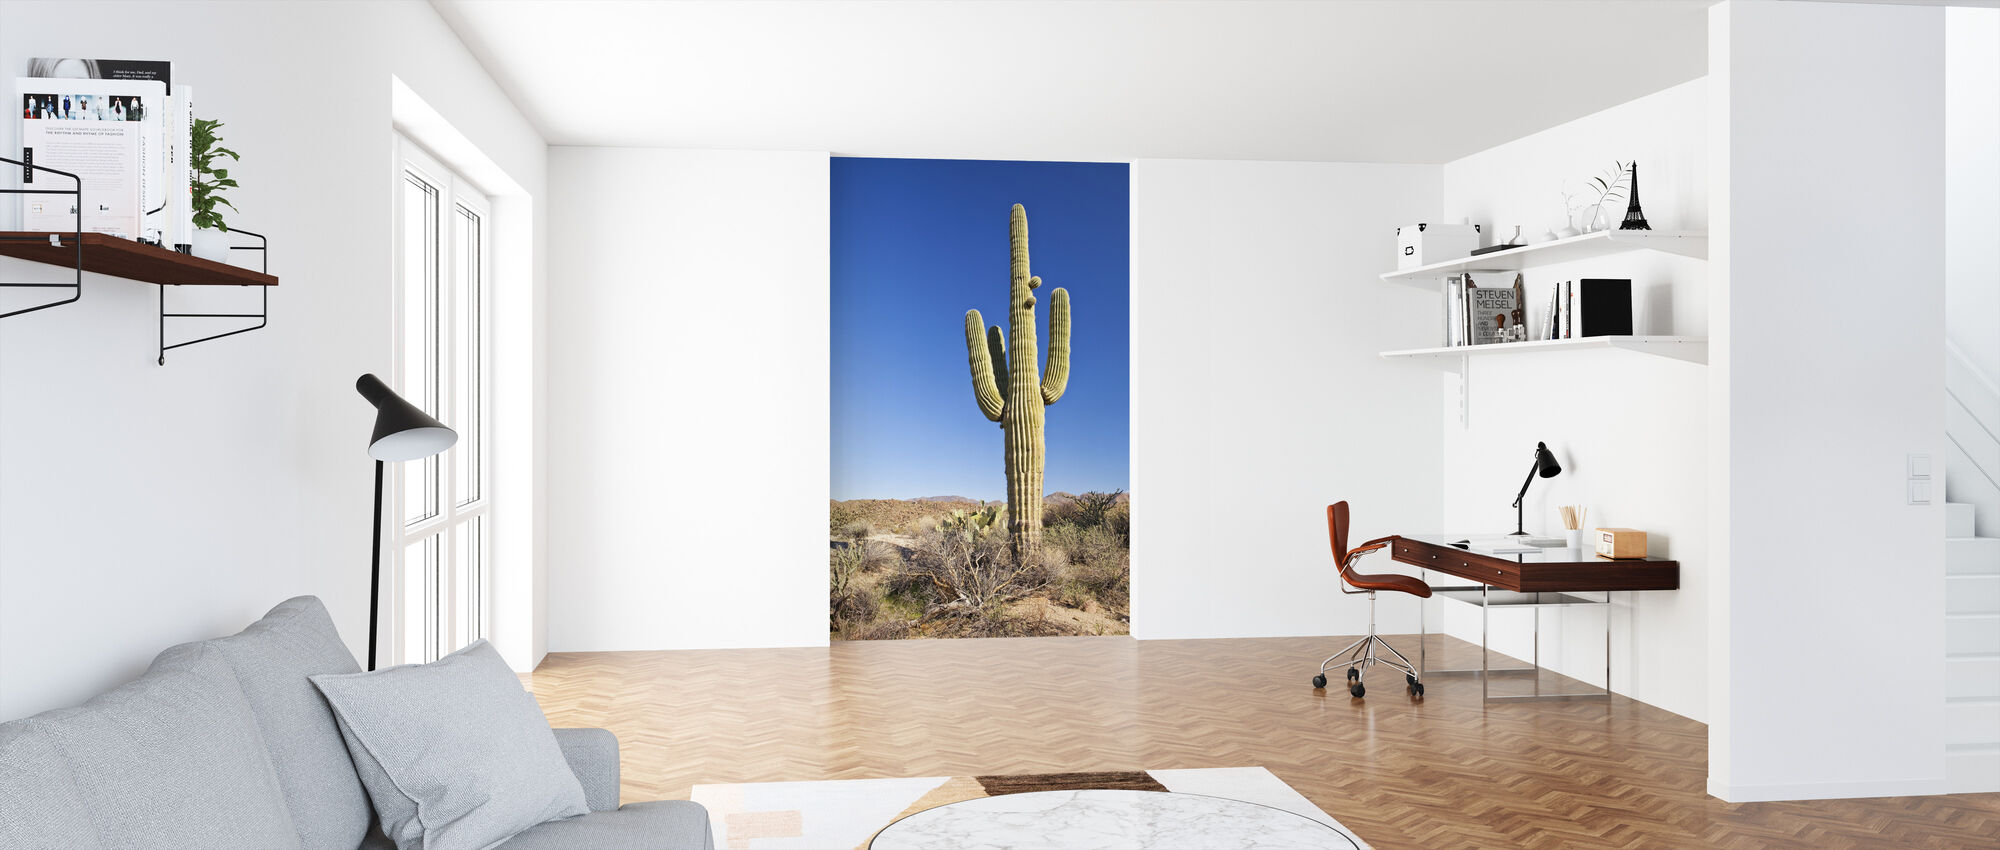 Saguaro Cactus in Desert - Wallpaper - Office